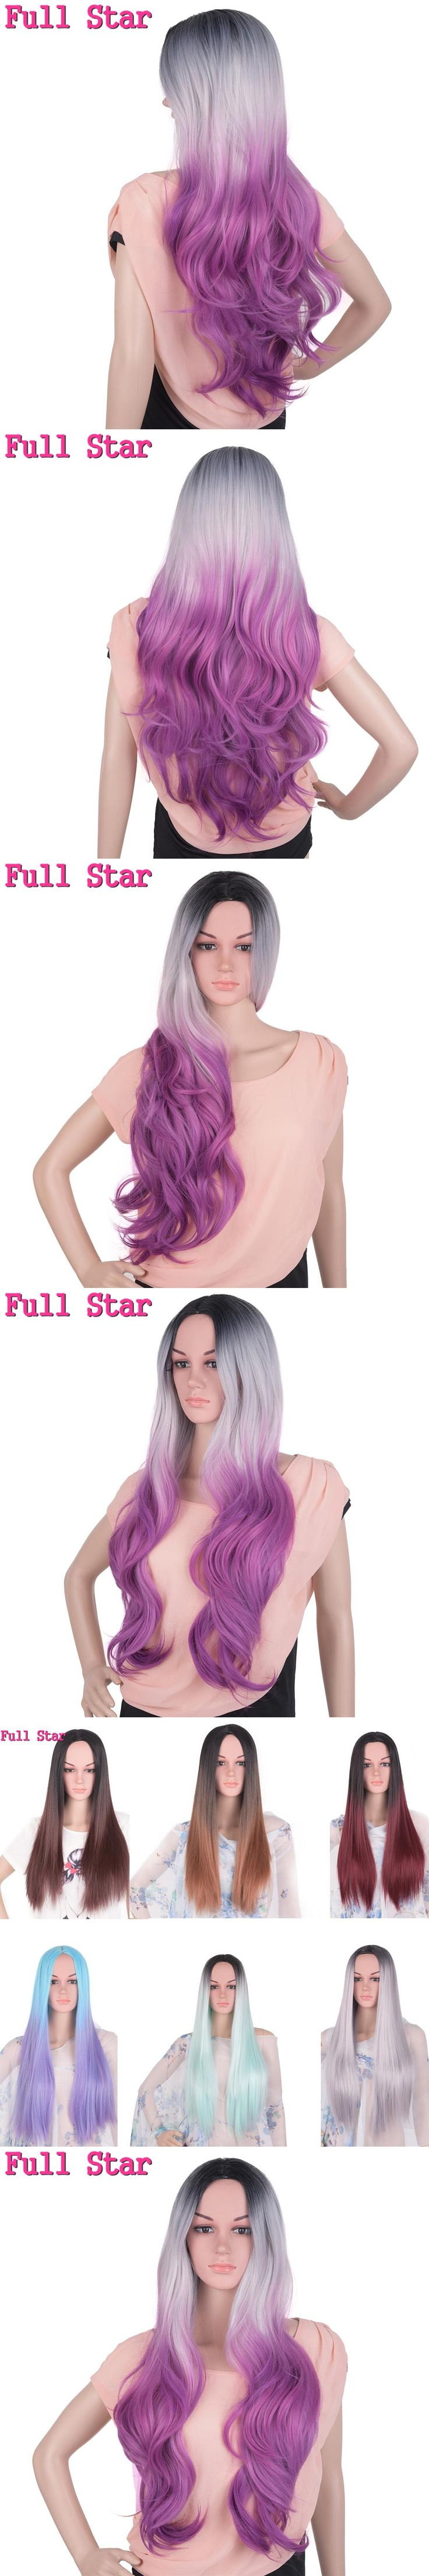 Full Star Black Grey Purple Wigs High Temperature Fiber 24 Inch 280g No Lace Full Head Nature Wave Long Ombre Synthetic Wig